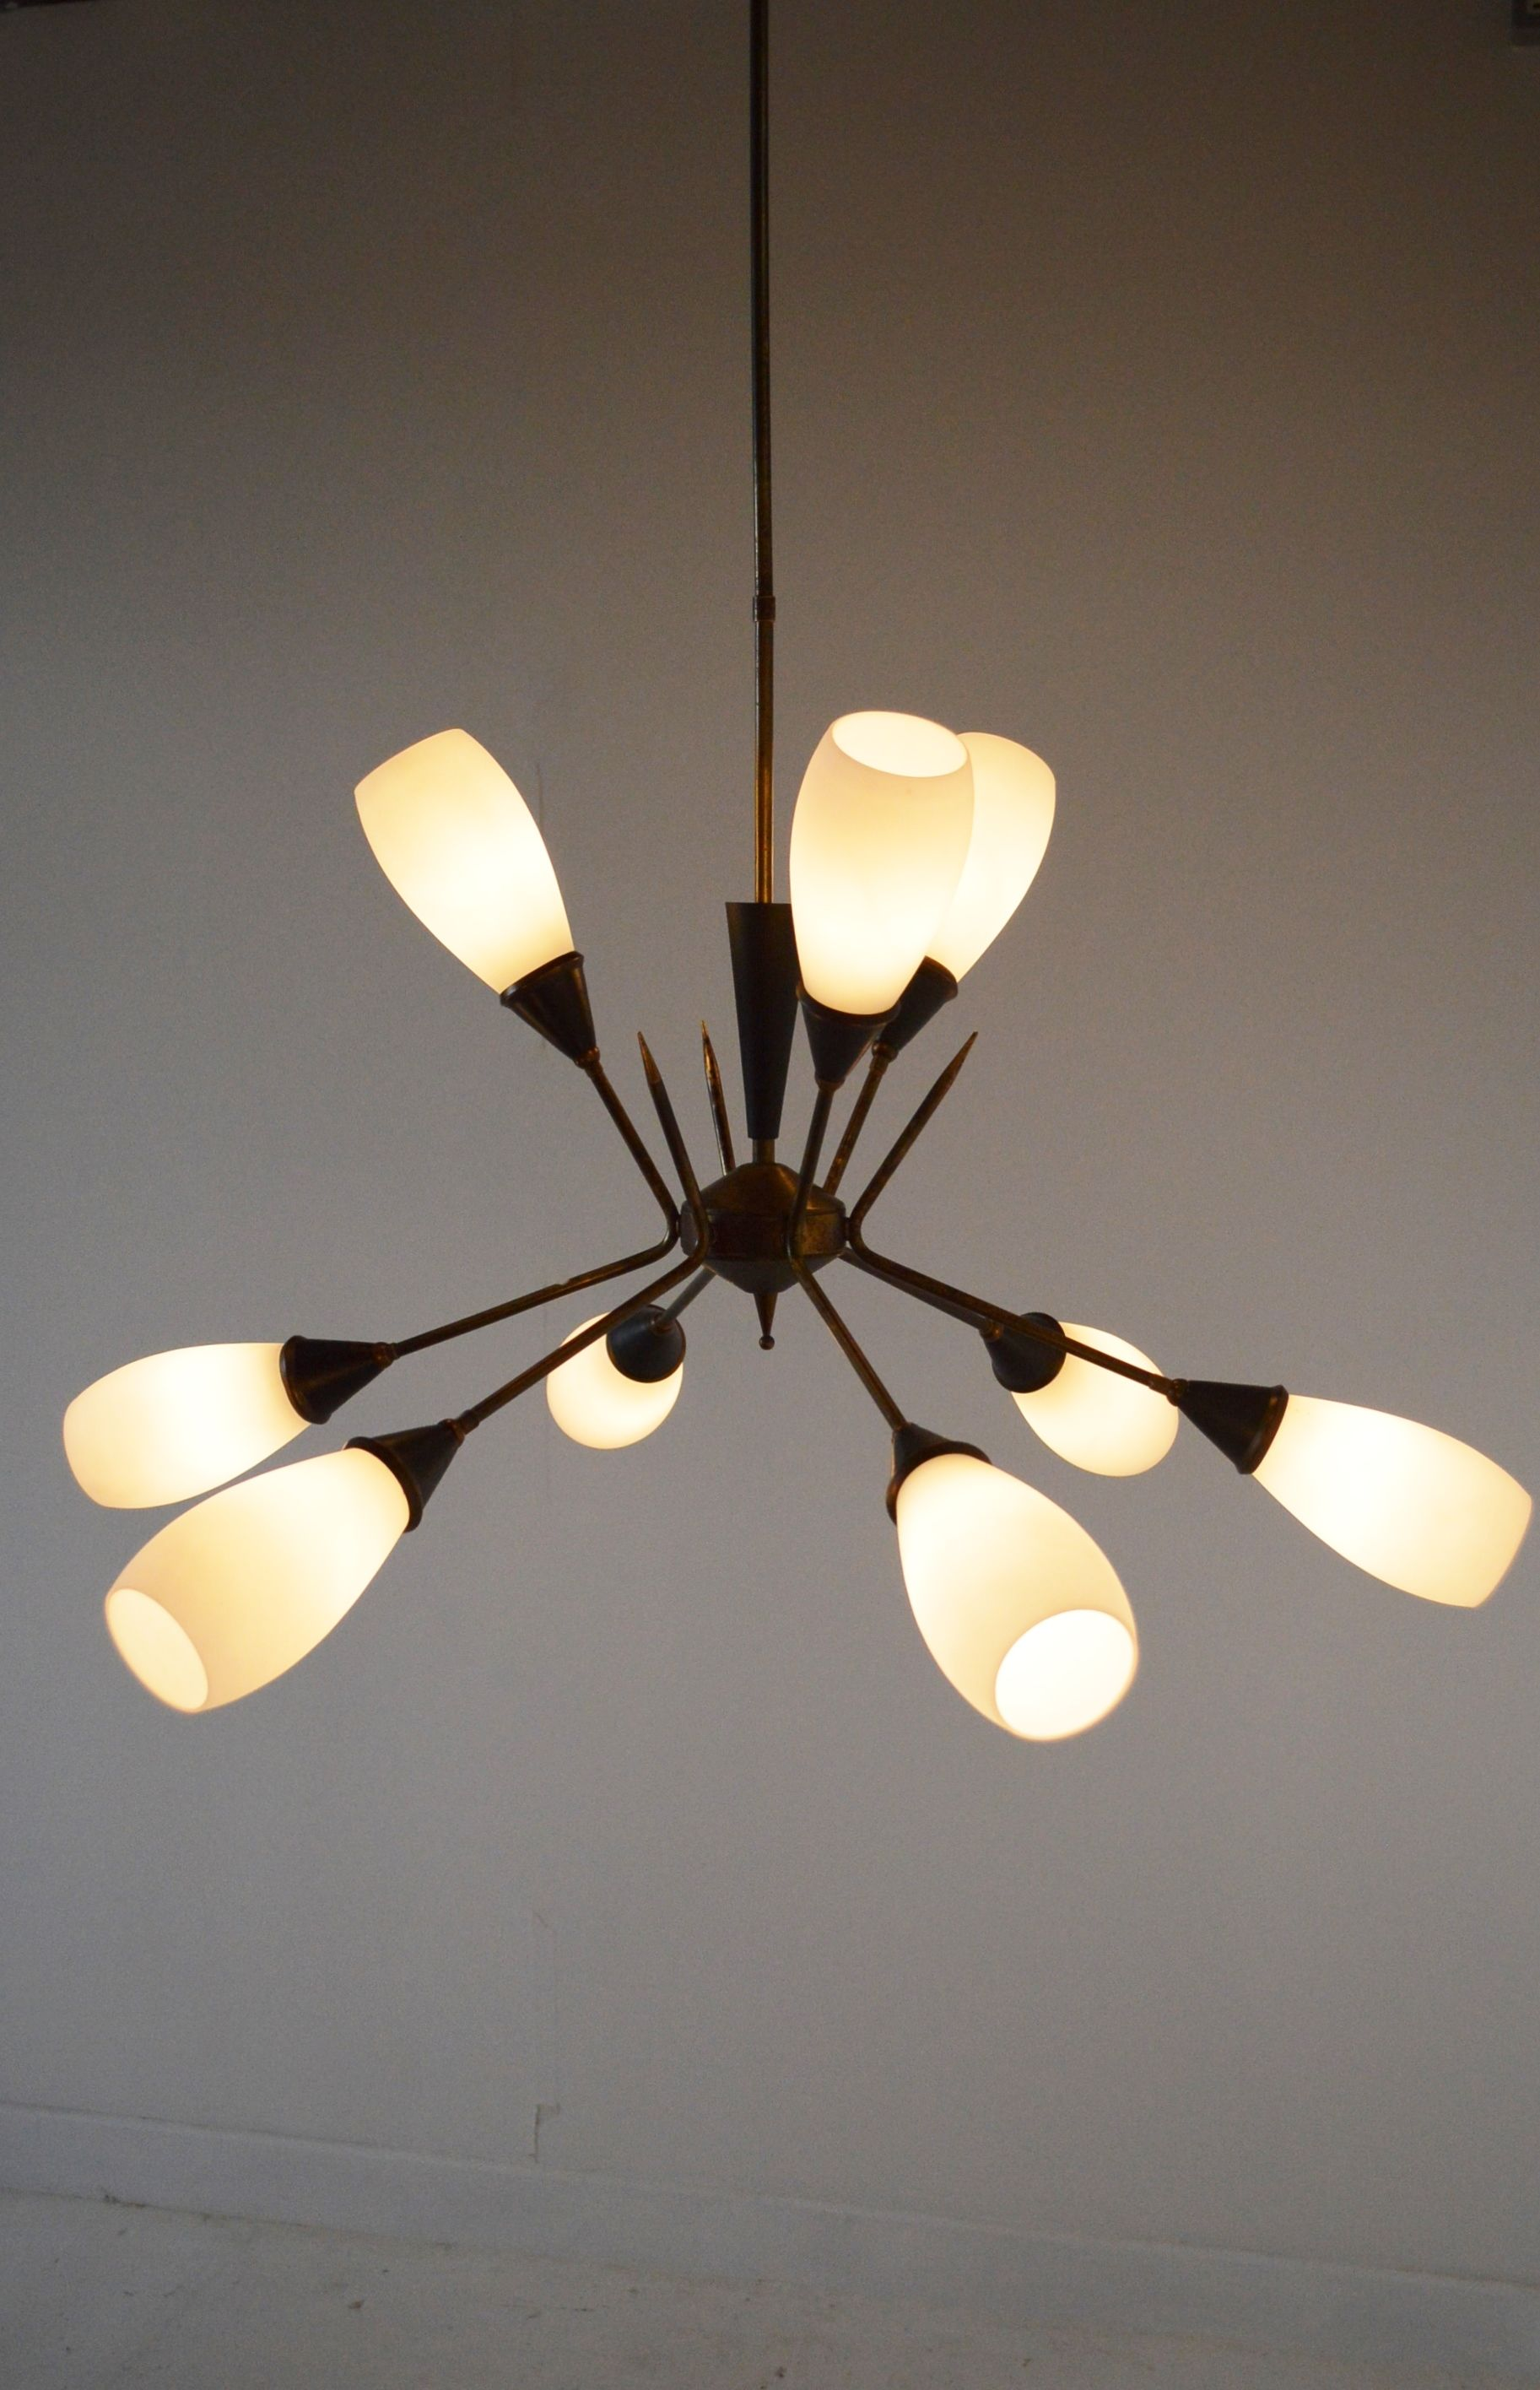 mid century modern lighting. Stilnovo Chandelier, 1950s Mid Century Modern Lightning Lamps Lighting